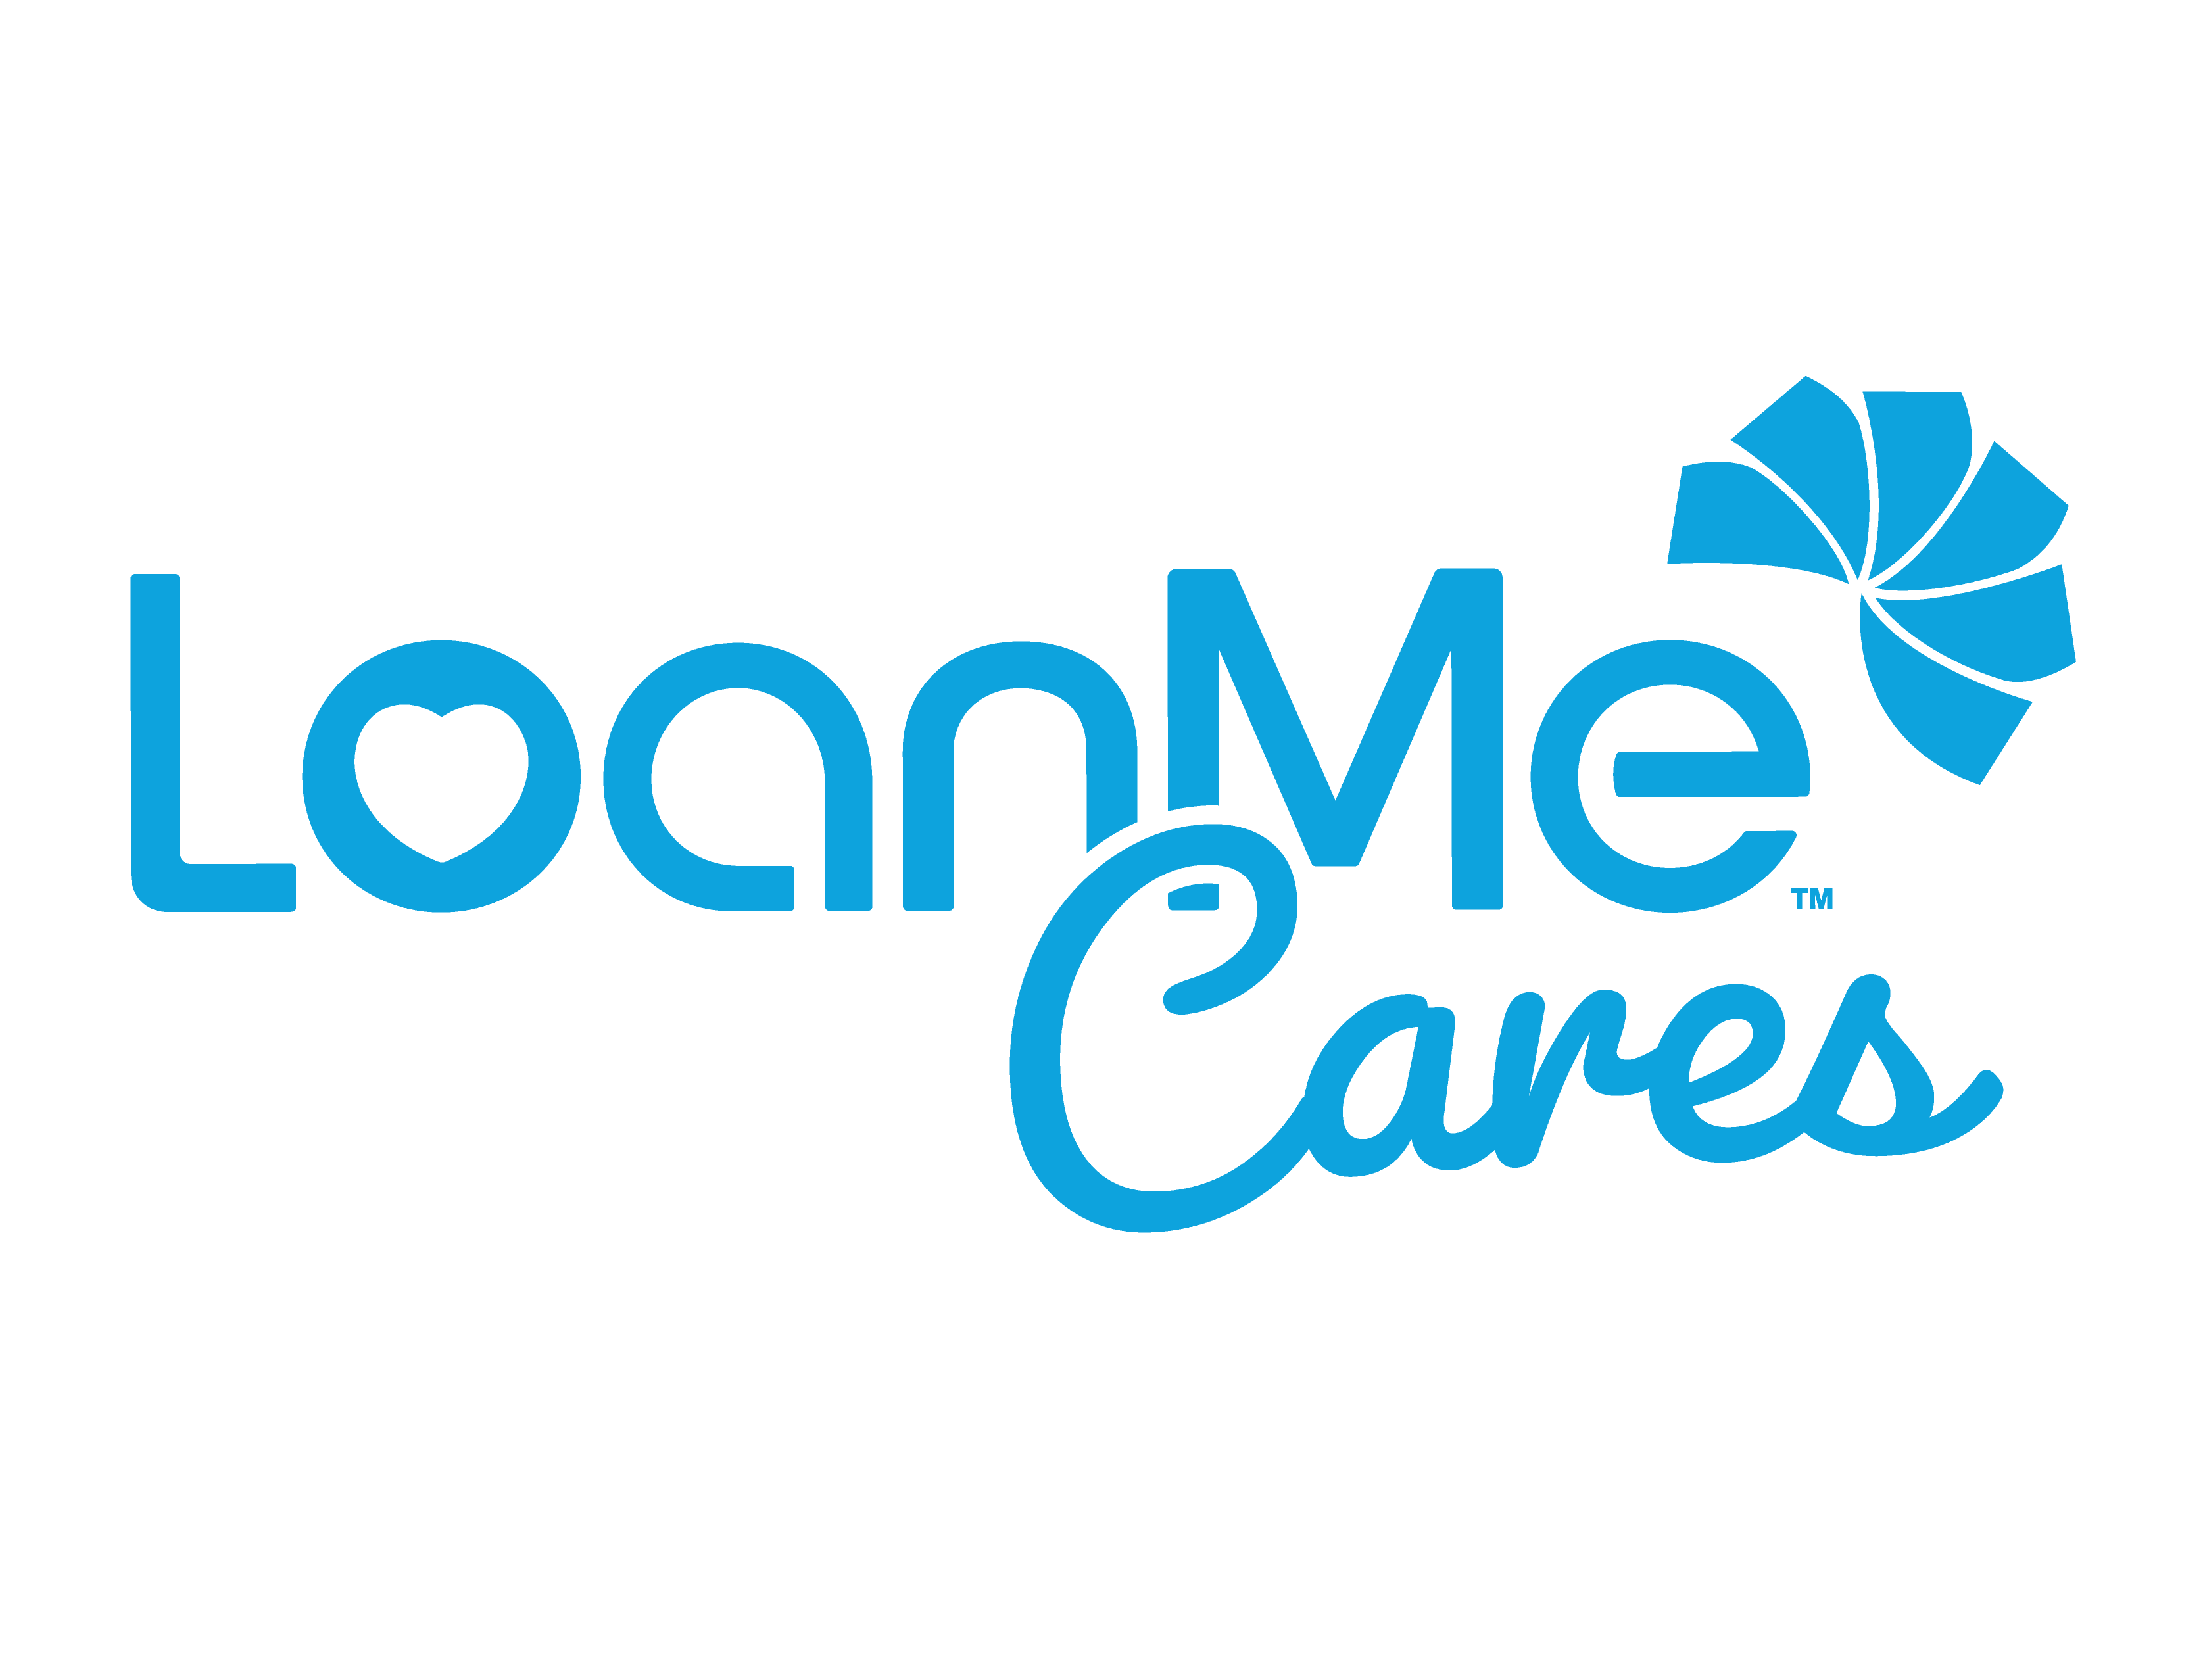 CA Lending Company Launches Corporate Initiative to Lend a Helping Hand in Orange County With 'LoanMe Cares'